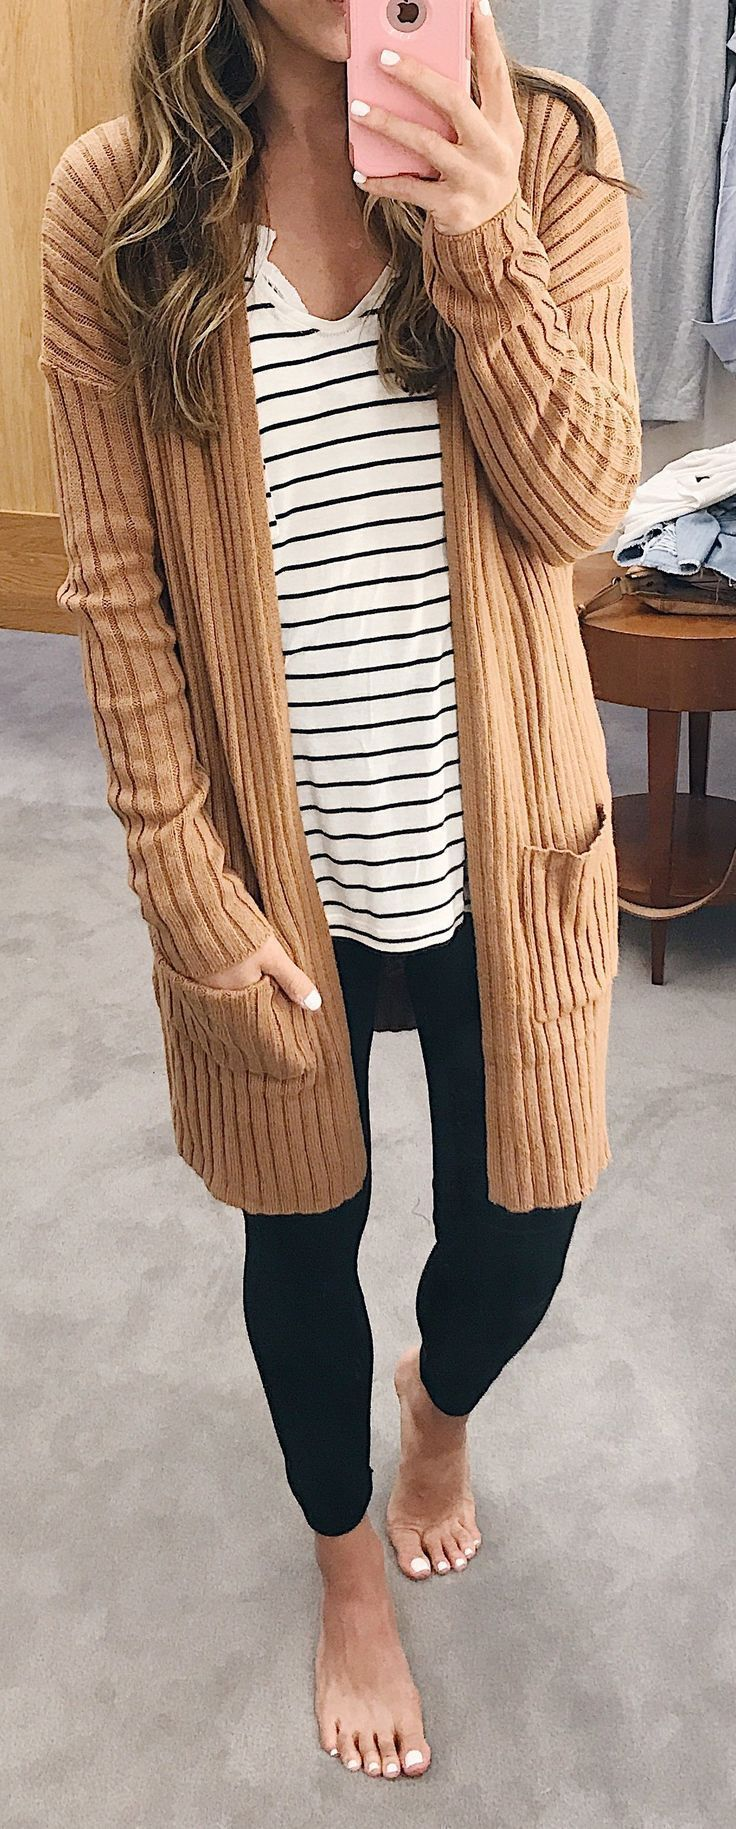 This is a cute, hipster kind of look. I am always a little nervous with long sweaters though because I'm so short!